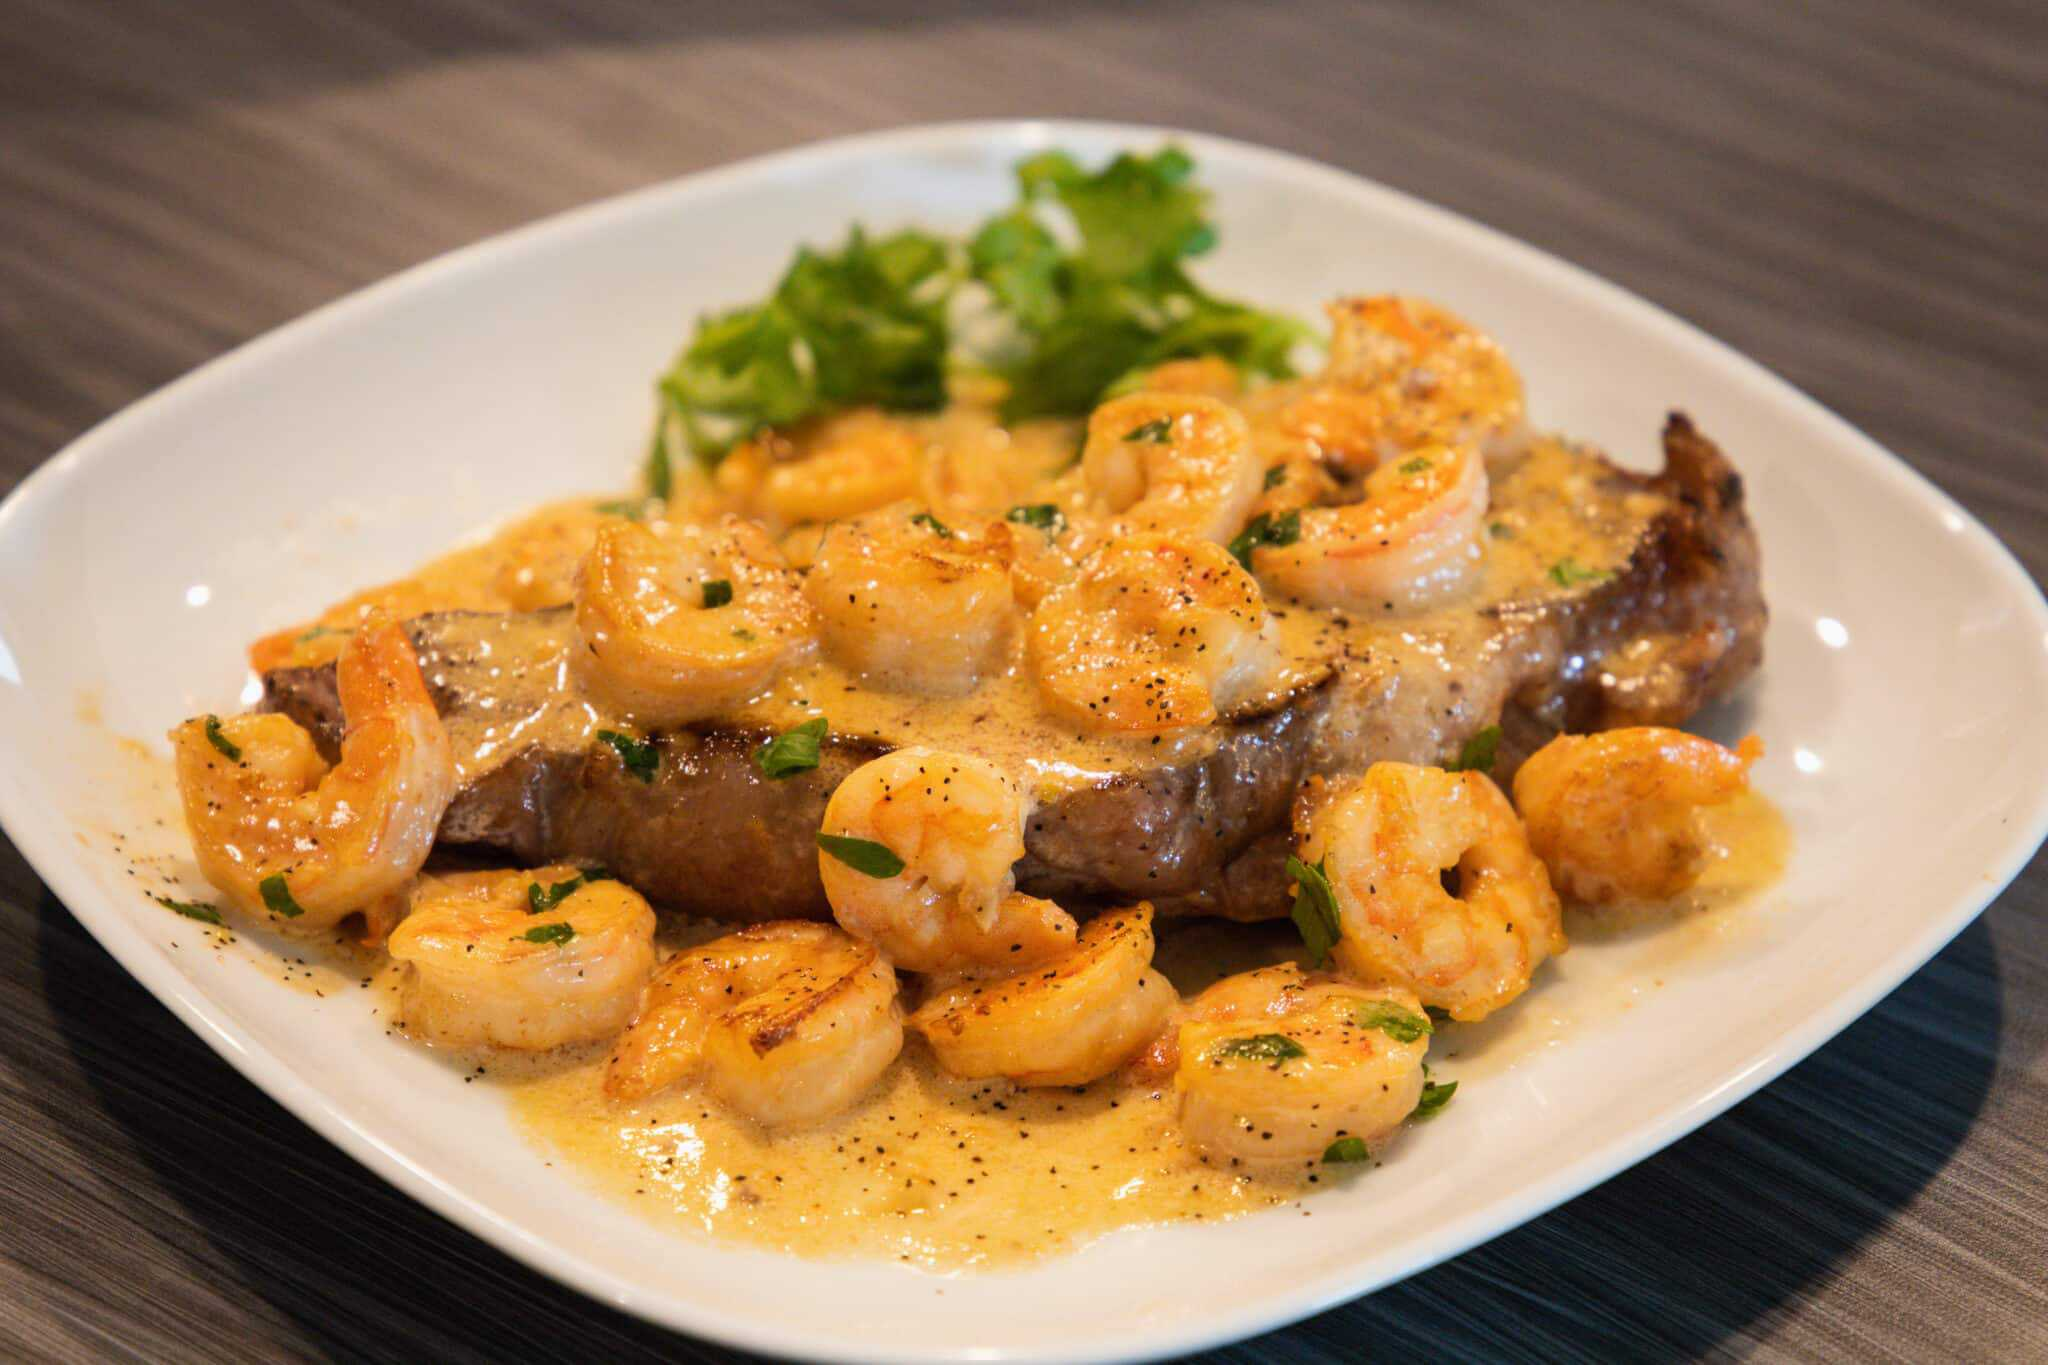 Surf 'N' Turf With Garlic Cream Sauce